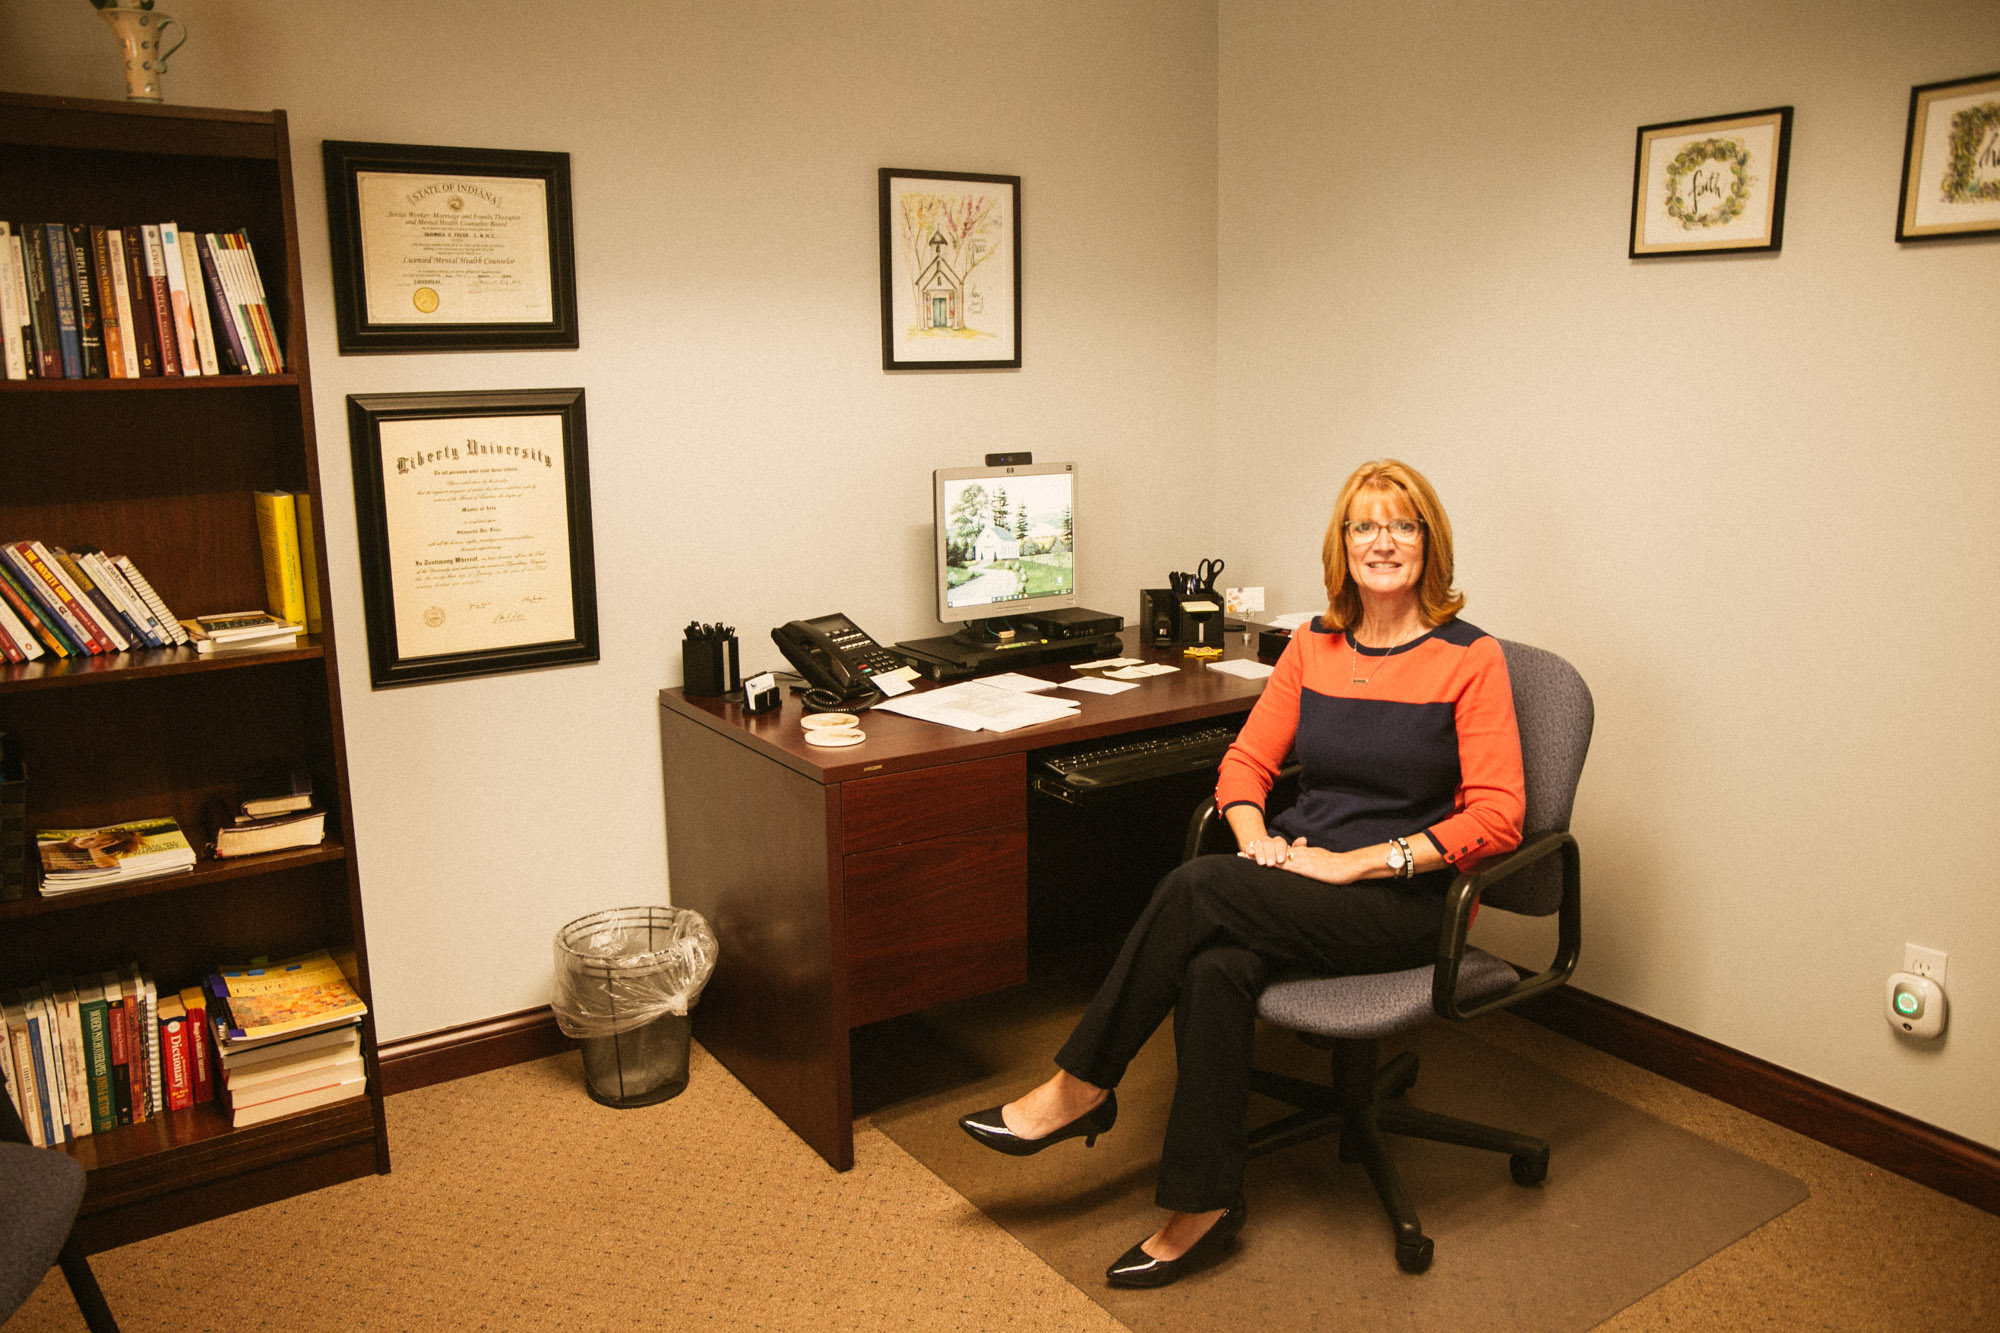 A counselor sits with a welcoming smile in her office.